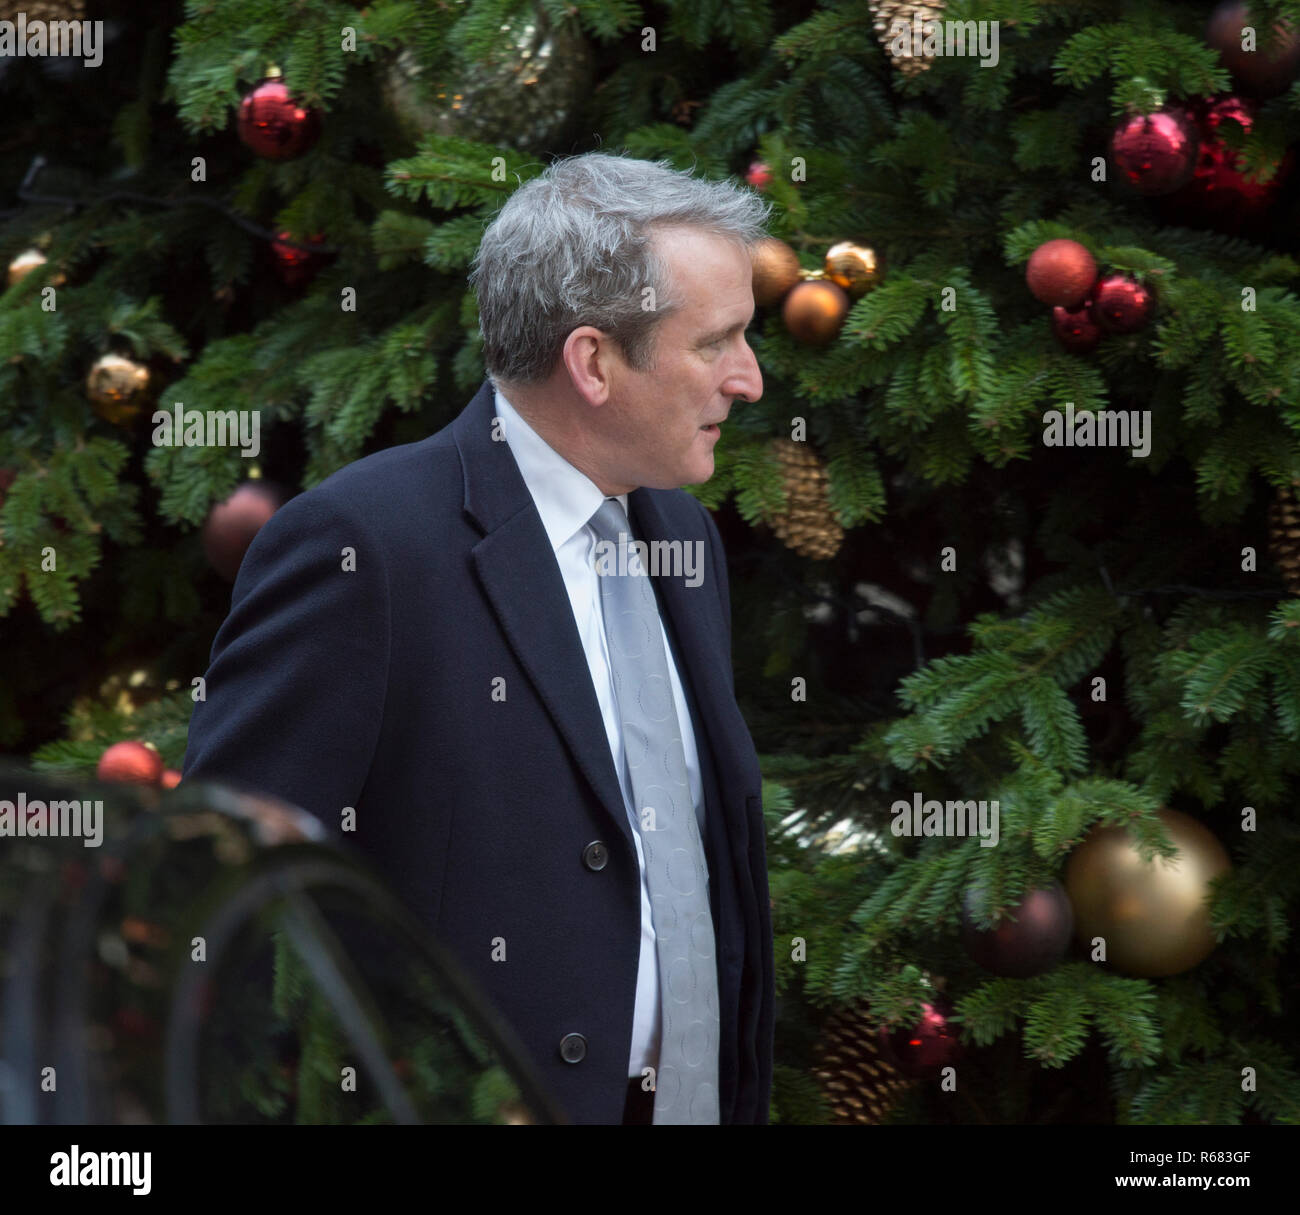 Downing Street, London, UK. 4 December 20188. Damian Hinds, Secretary of State for Education, in Downing Street for weekly cabinet meeting. Credit: Malcolm Park/Alamy Live News. - Stock Image